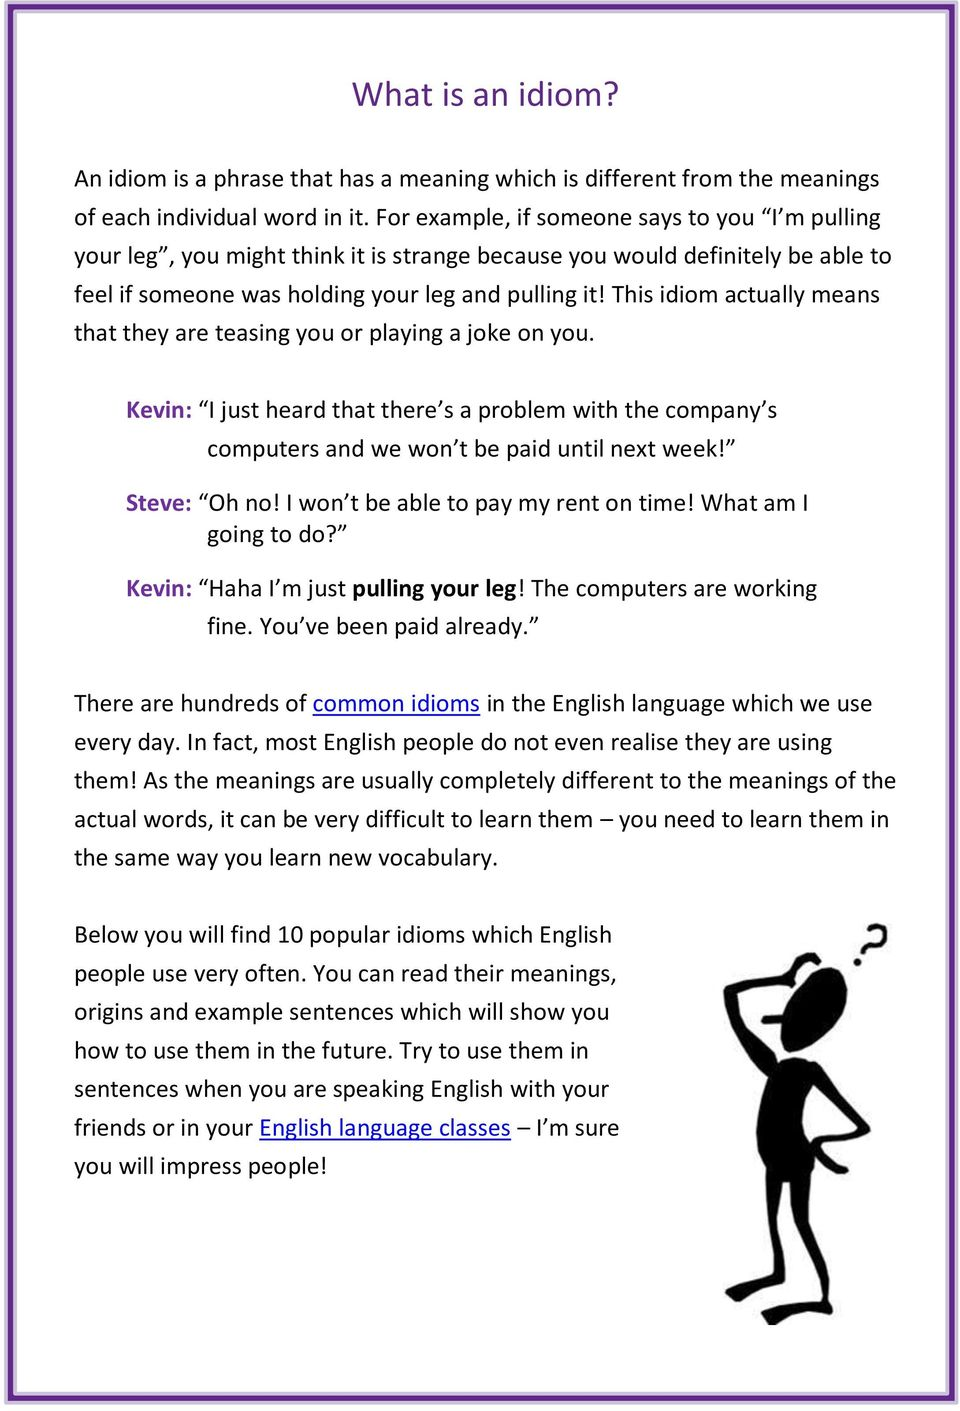 10 Common English Idioms and How to Use Them  Learn the meanings and